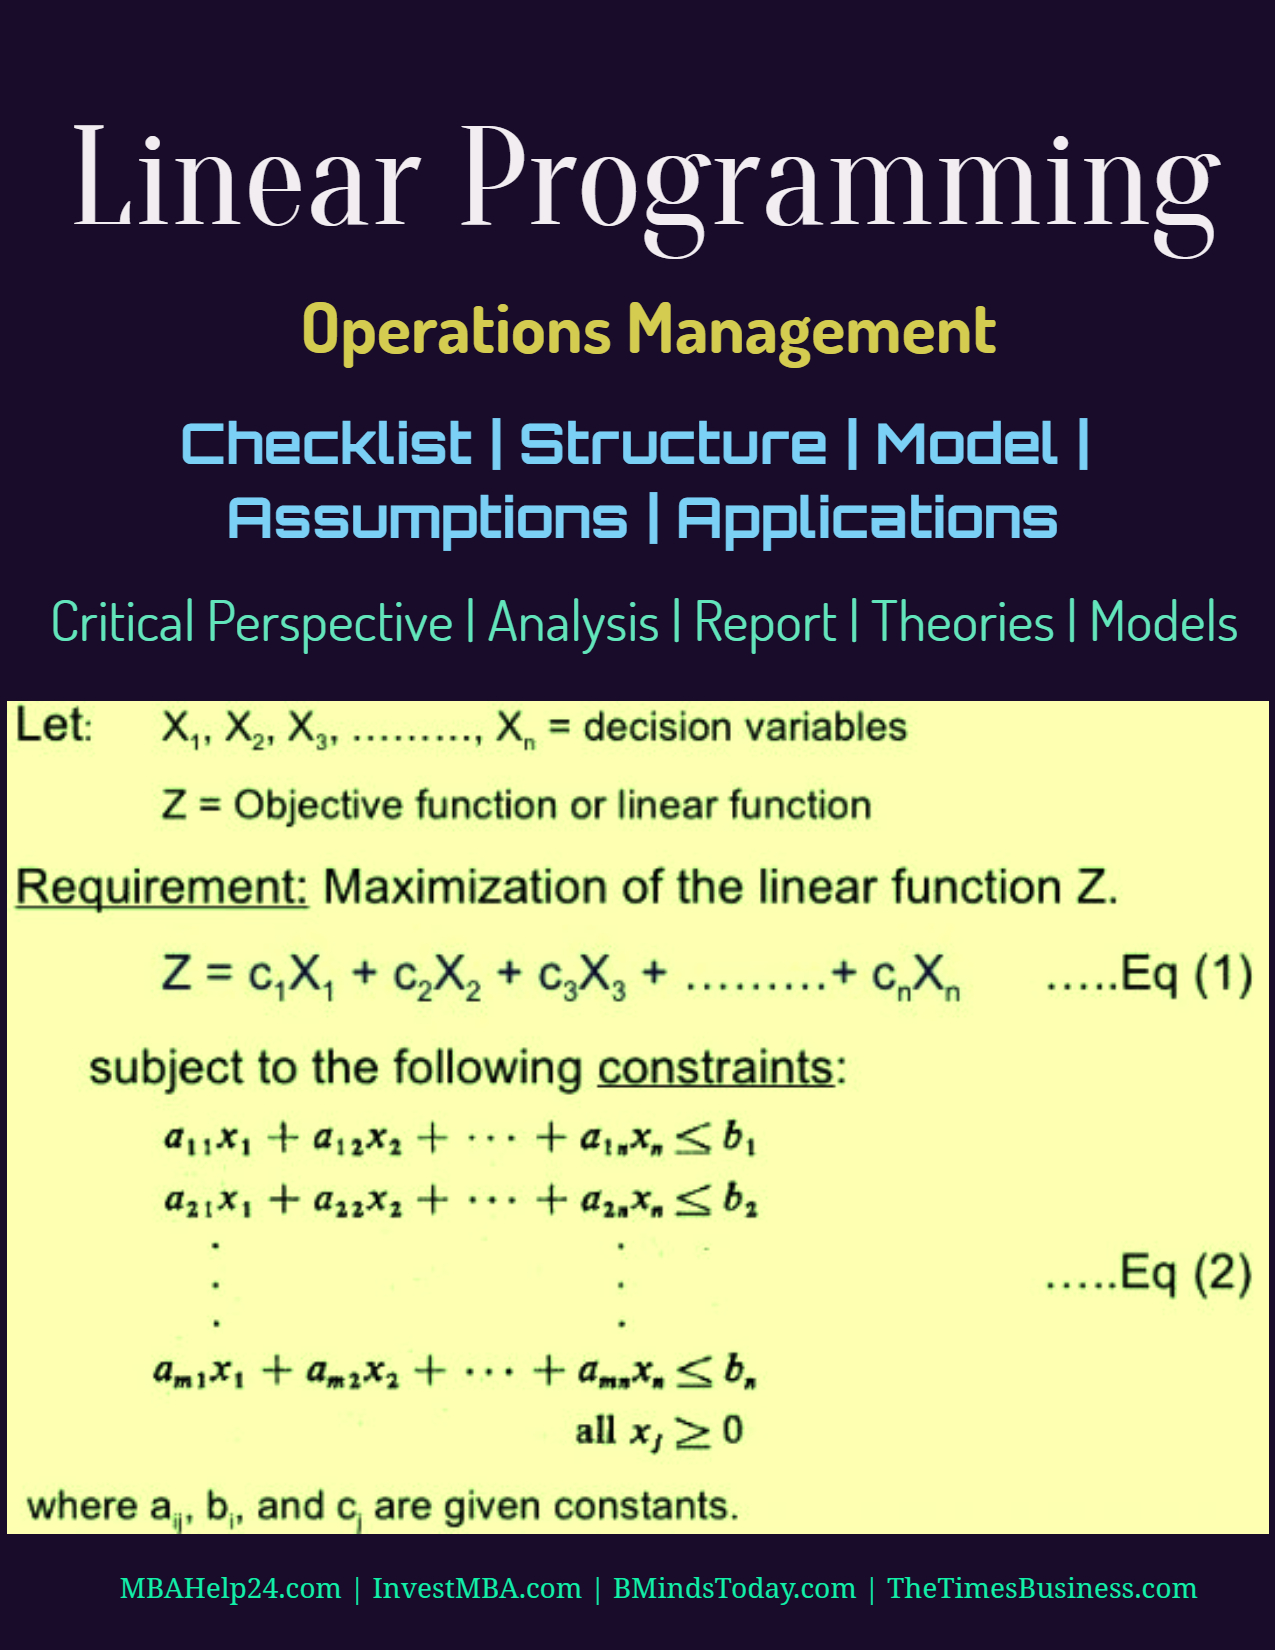 Linear Programming | Checklist | Structure | Model | Assumptions | Applications Linear Programming Linear Programming | Checklist | Structure | Model | Assumptions | Applications Linear Programming Checklist Structure Model Assumptions Applications